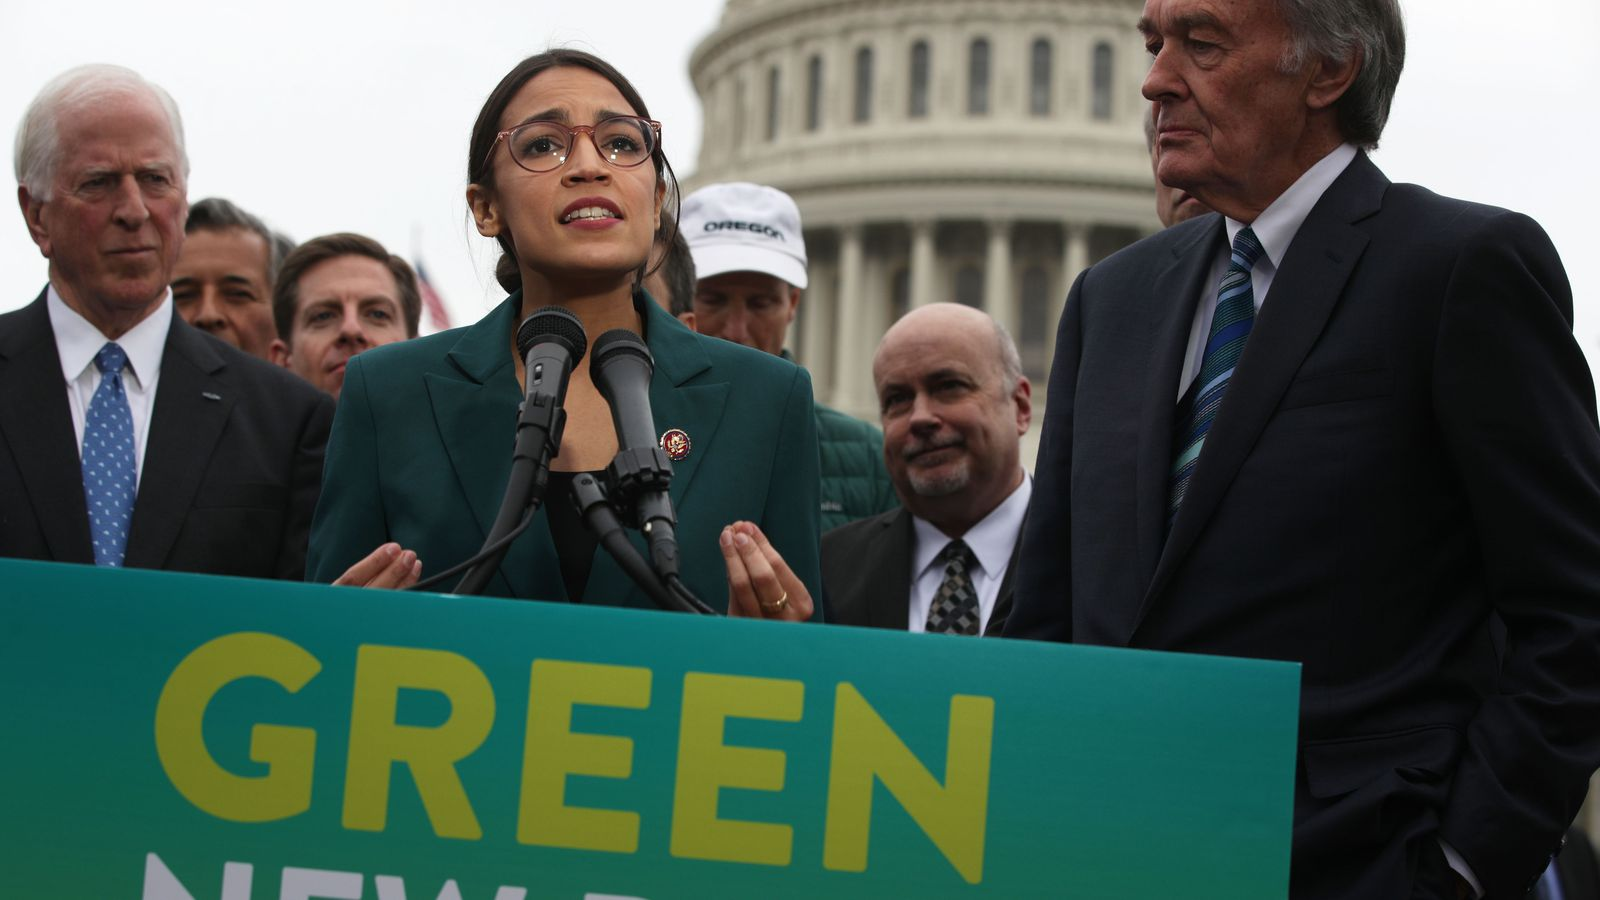 Green New Deal: Where the 2020 presidential candidates stand